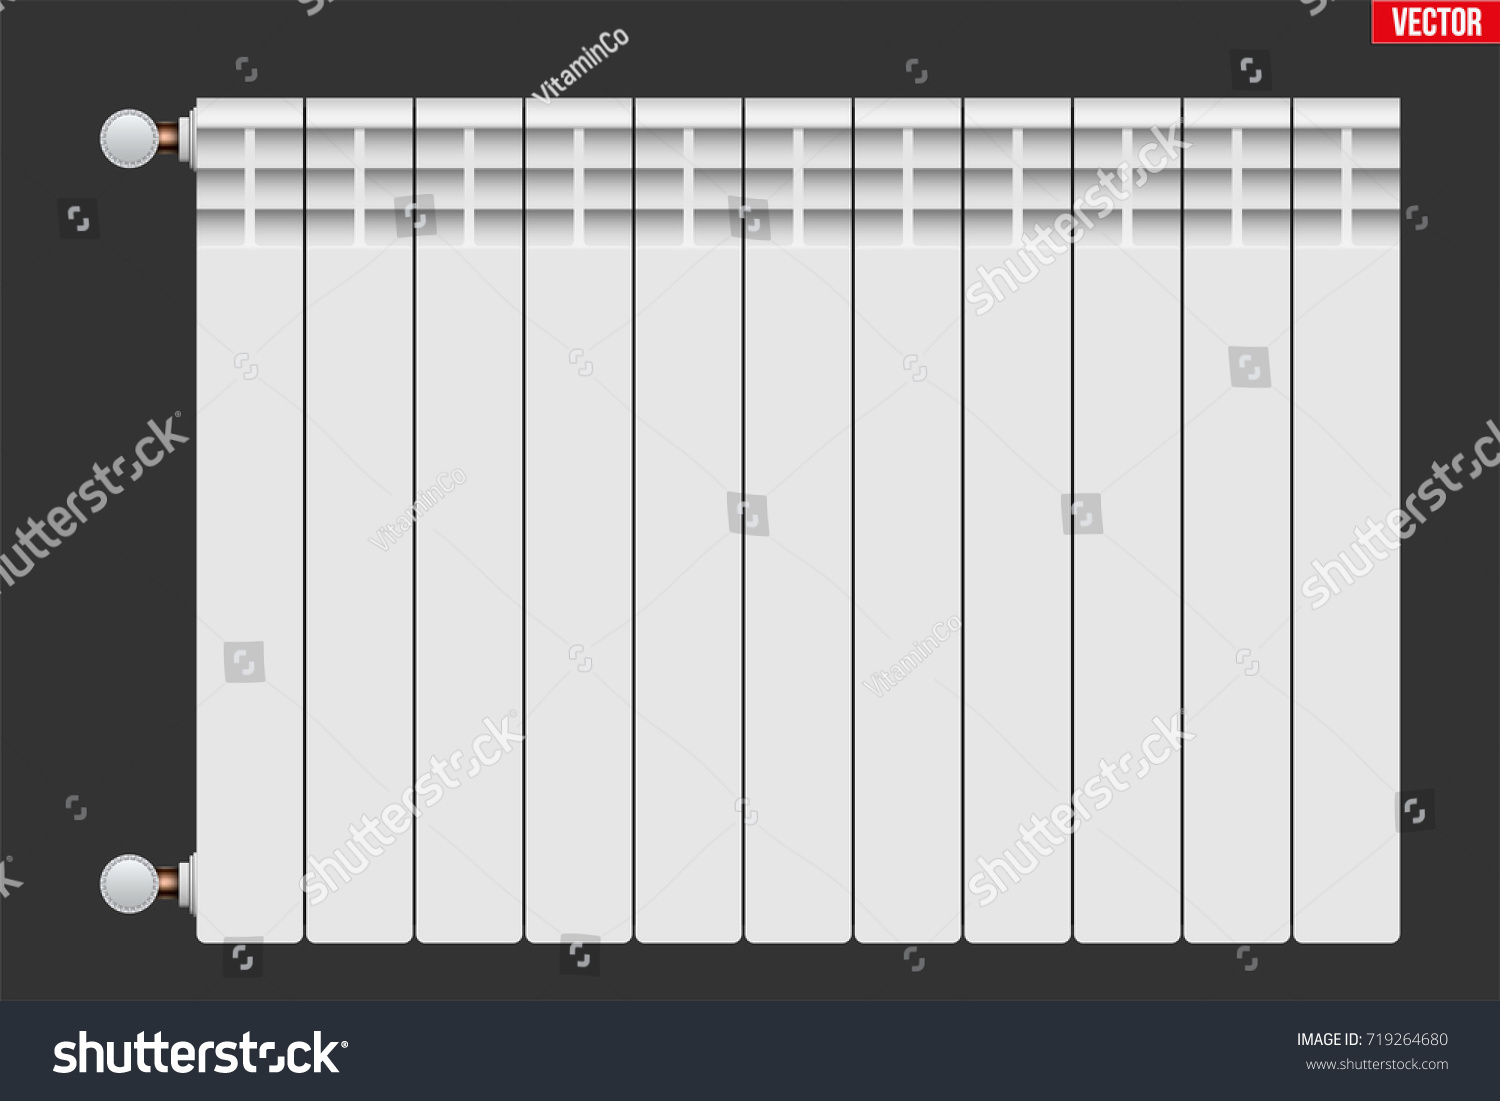 Metal Heating Radiator Central Heating System Stock Vector 719264680 ...